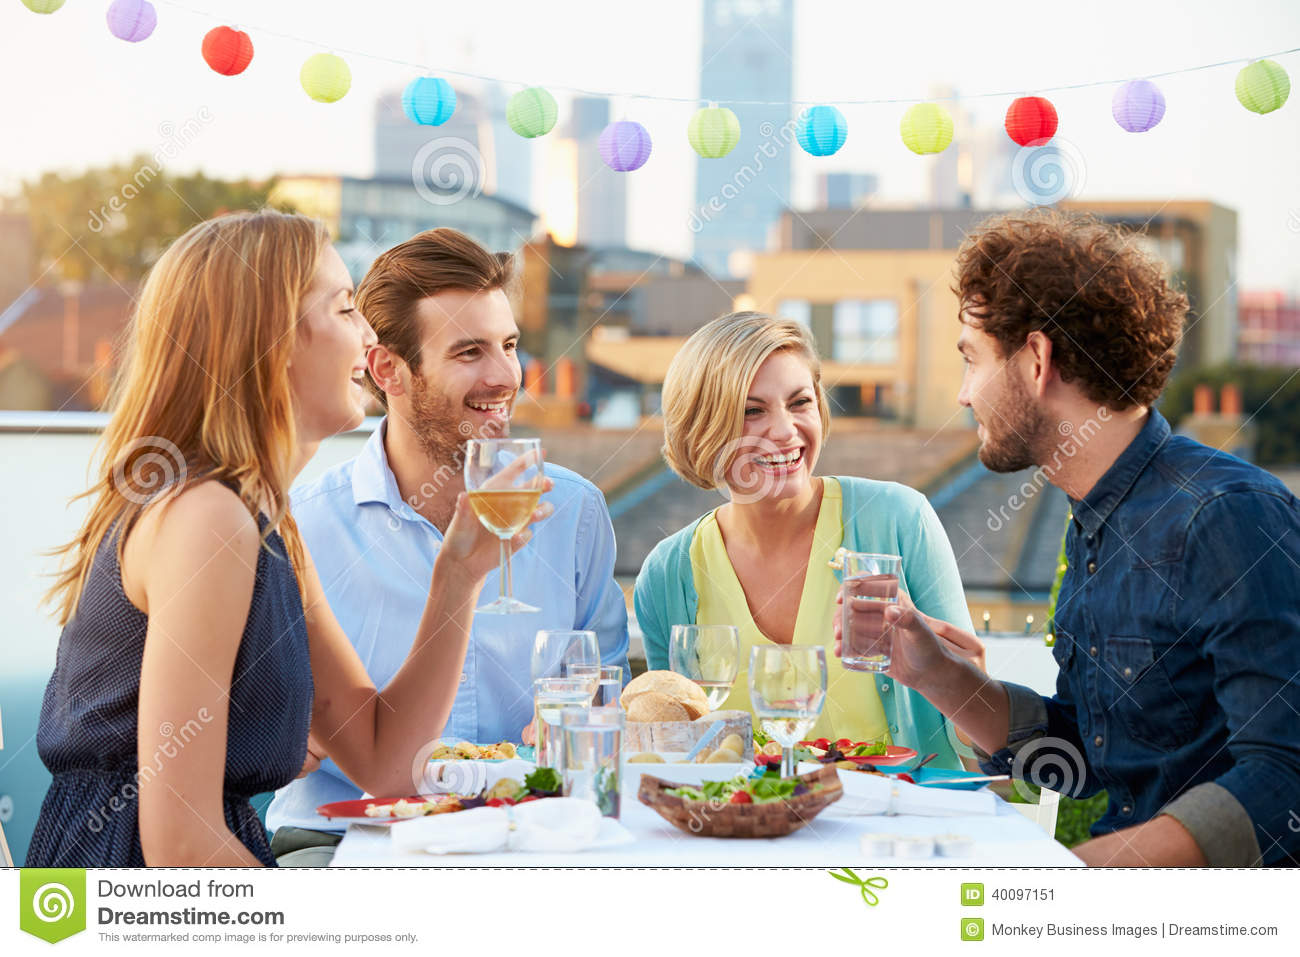 Fuck very group eating image